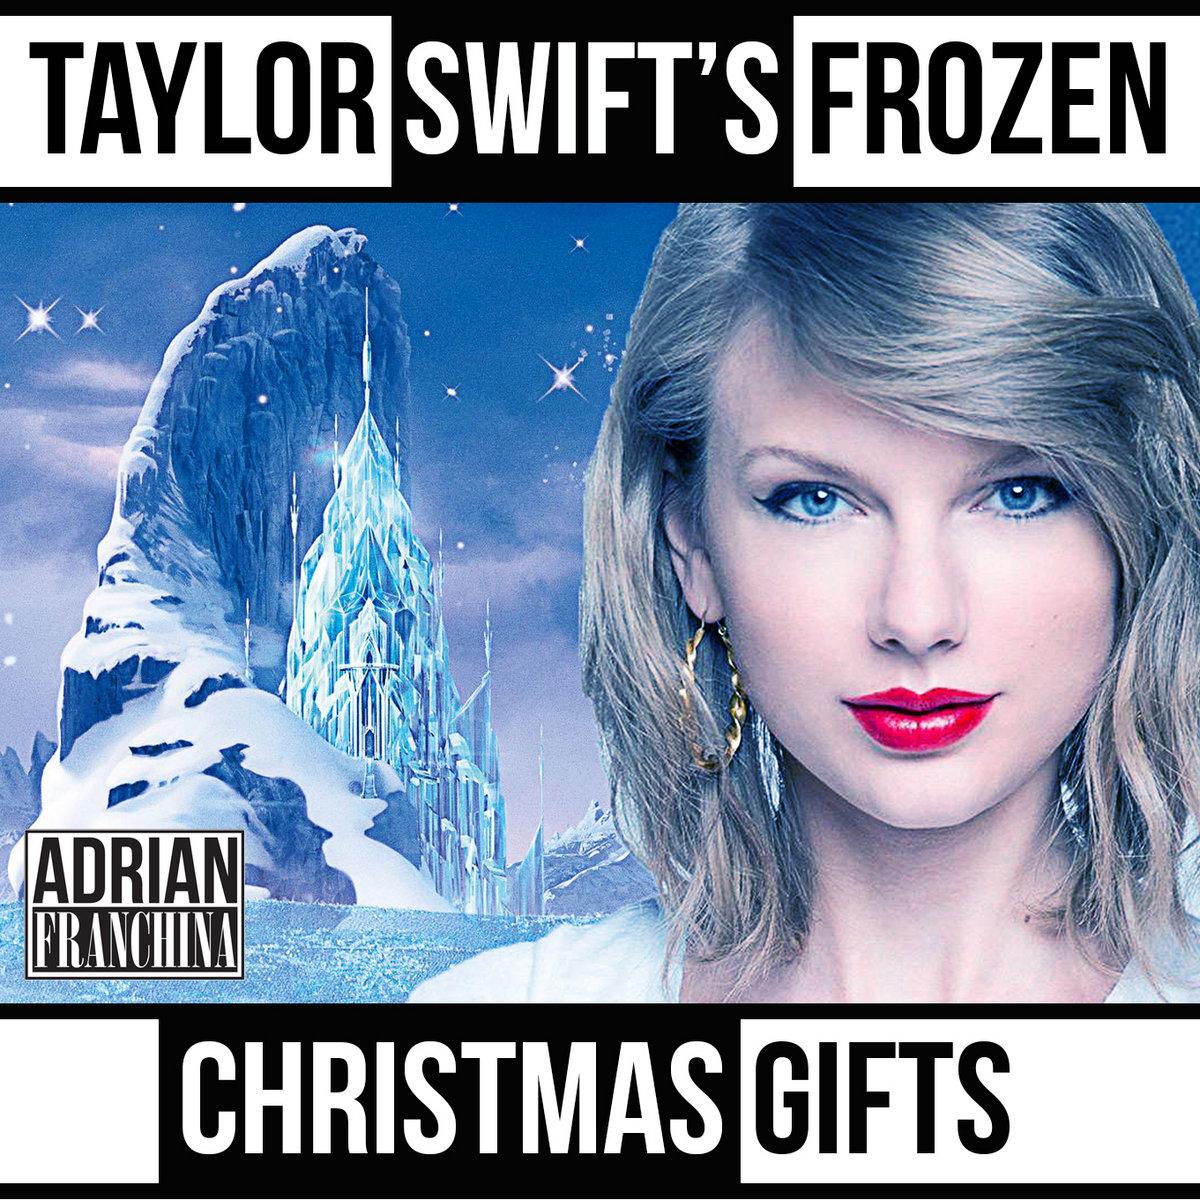 Taylor Swift S Frozen Christmas Gifts Adrian Franchina